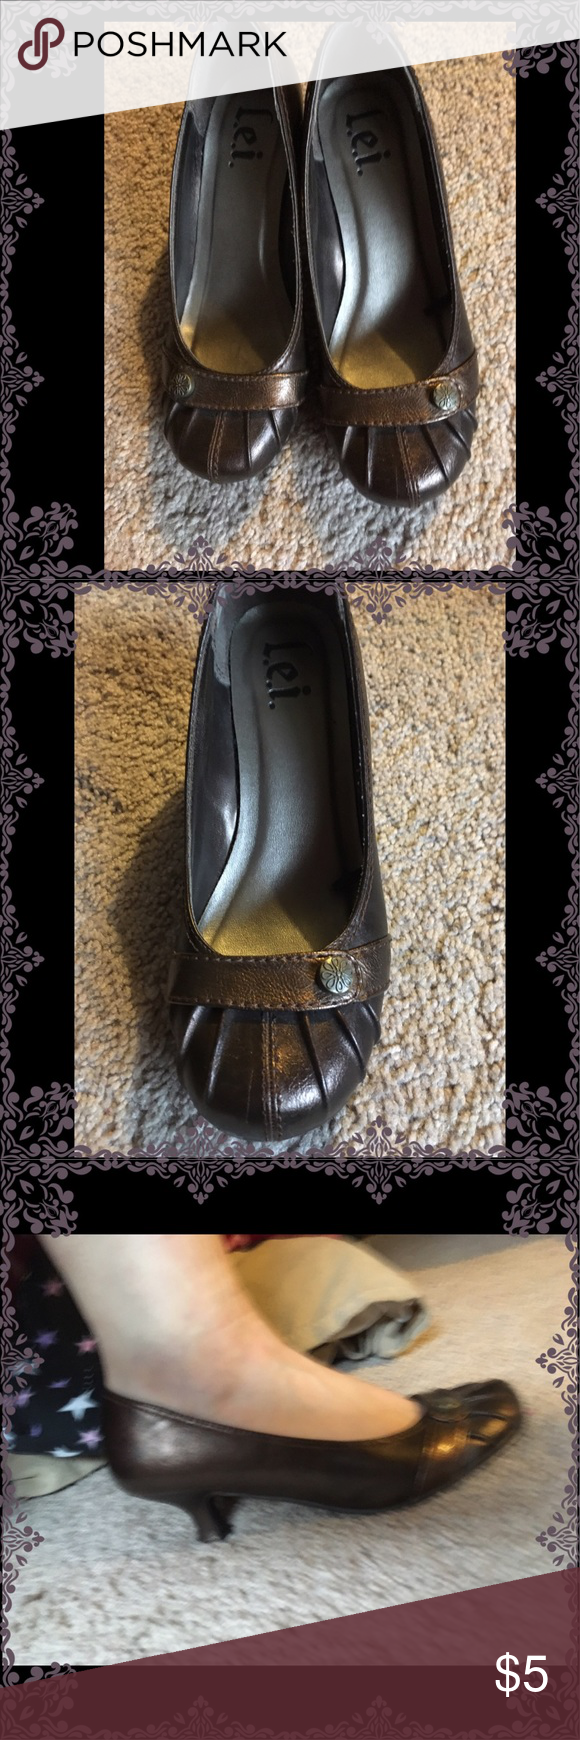 Dress shoes women's Great dress shoes fits to size very comfortable only issue is the bottom of one shoe is crooked if you can get it off it twist it and re glue it it be perfect I can't twist it. I find no issue walking on them some people might price is low to reflect it issue. The shoes were not like it before I think the glue got lose and stayed that way. lei Shoes Heels